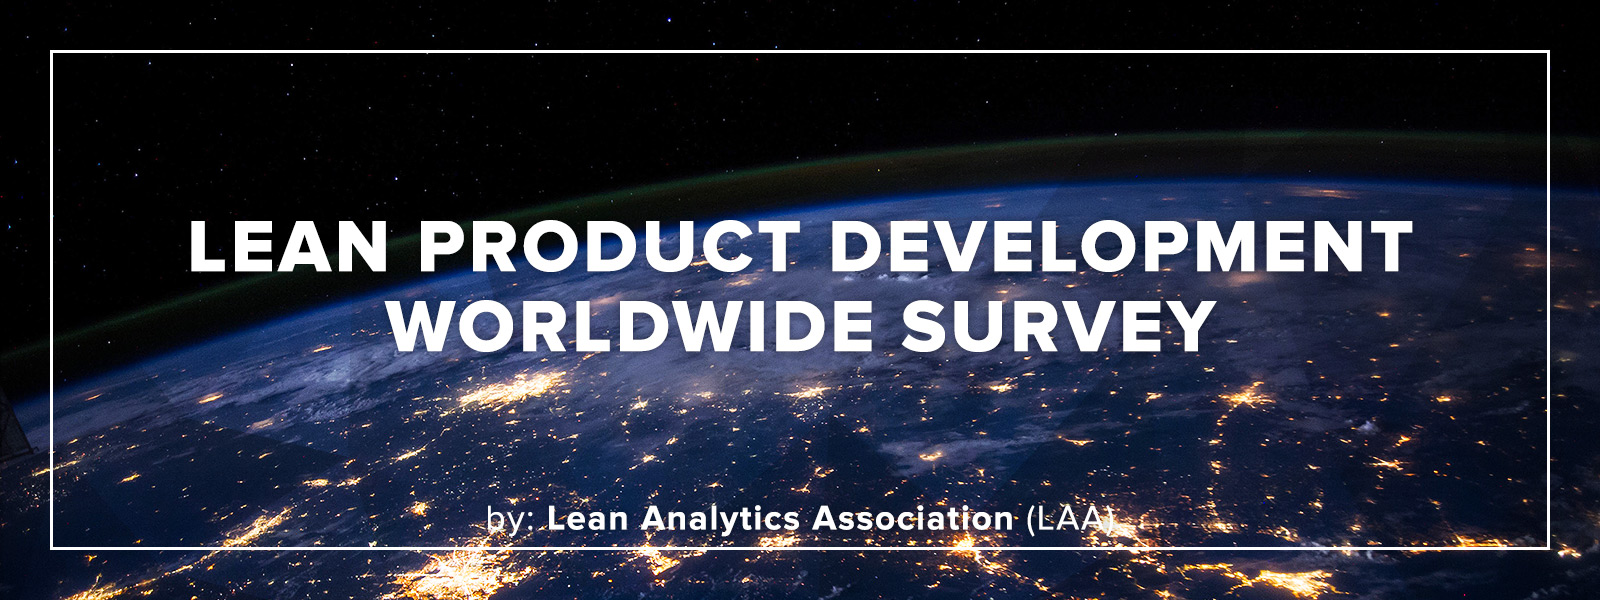 Lean Product Development Survey